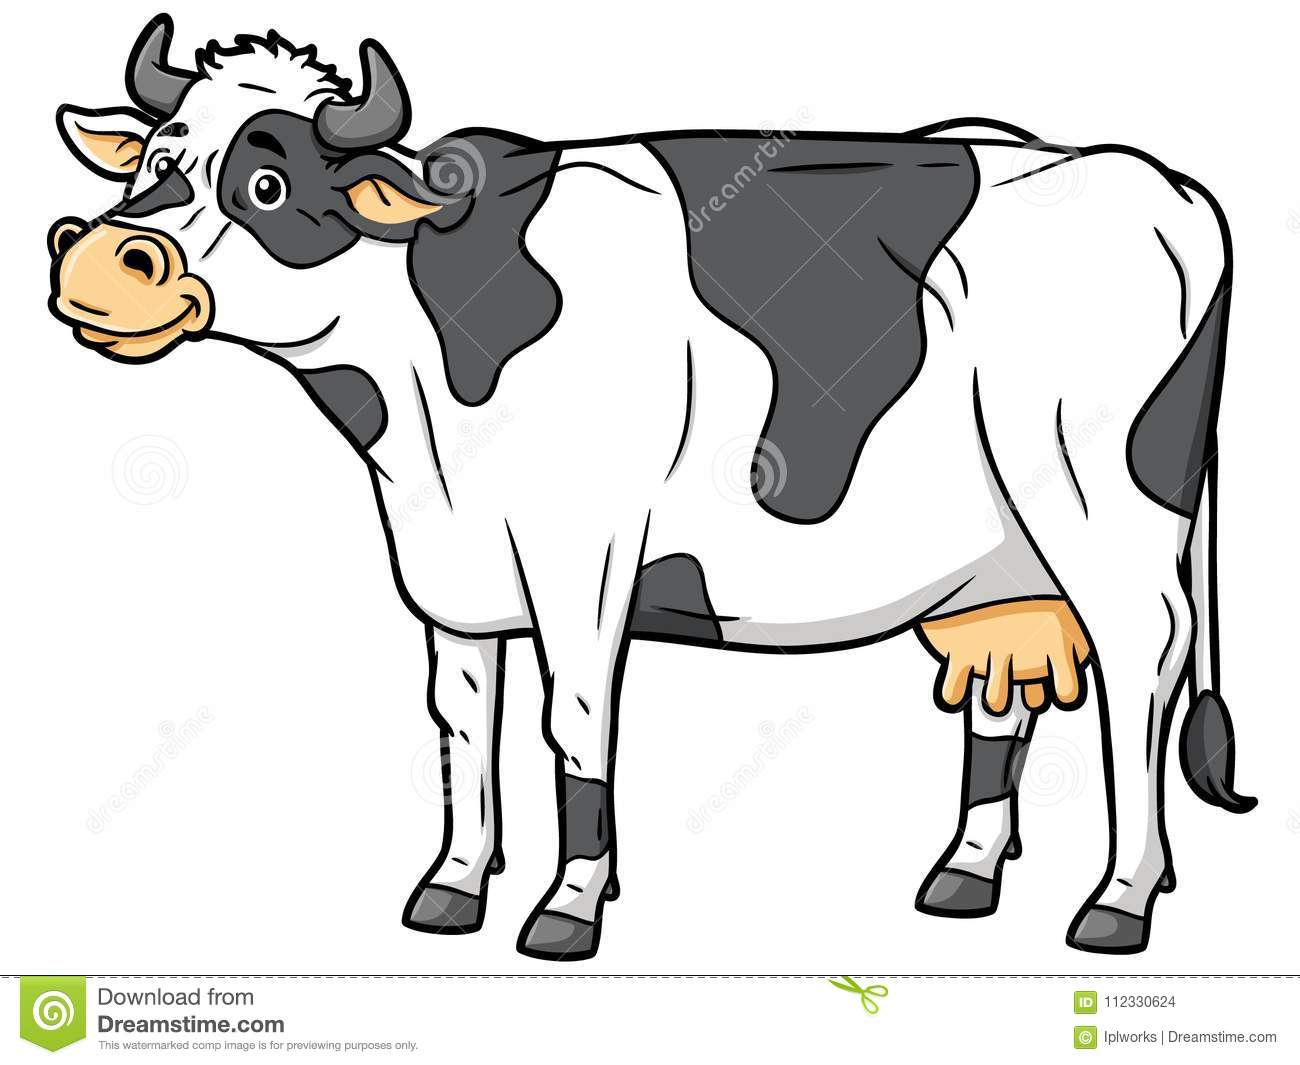 Cartoon Black And White Cow Stock Vector Illustration of black